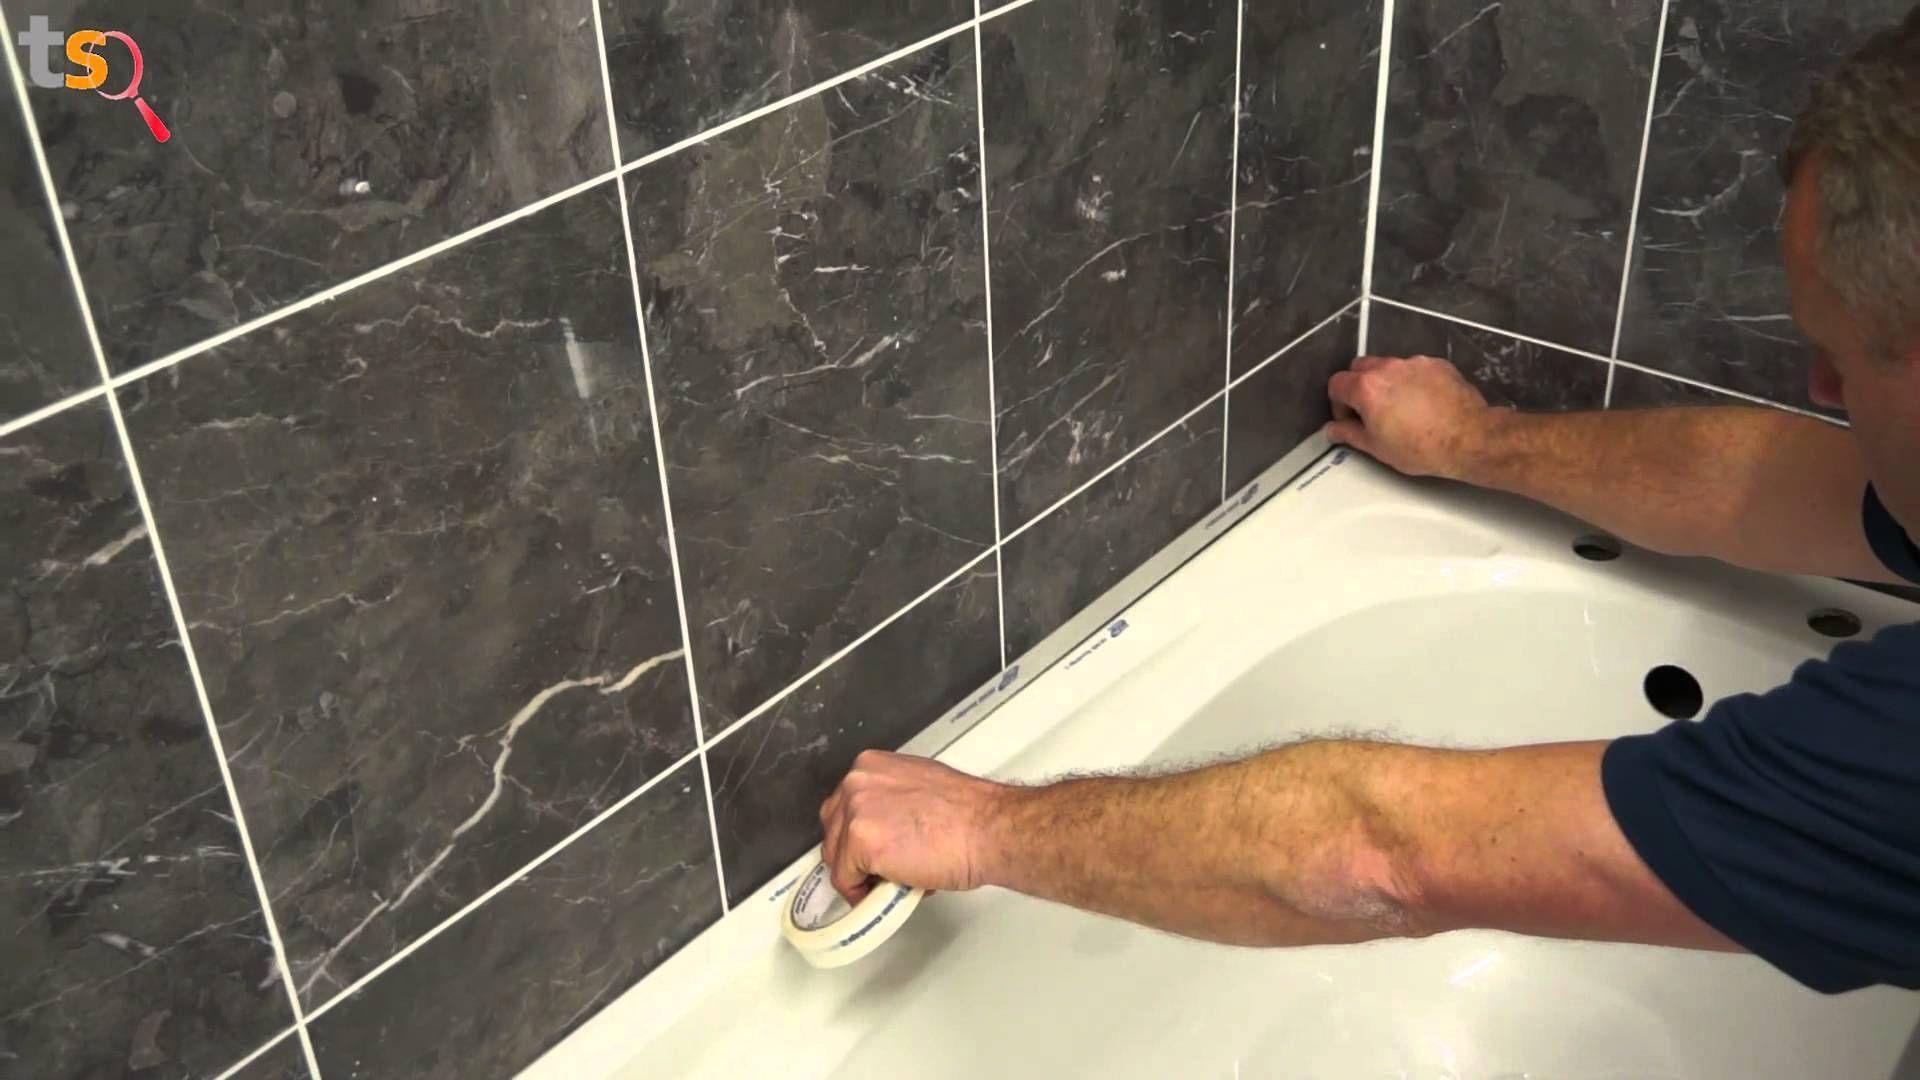 Tips For Removing And Replacing The Moldy Shower Caulk In A Bathroom Shower.  Old Caulk Removal, Clean Up, And New Caulk Installation Are Covered.